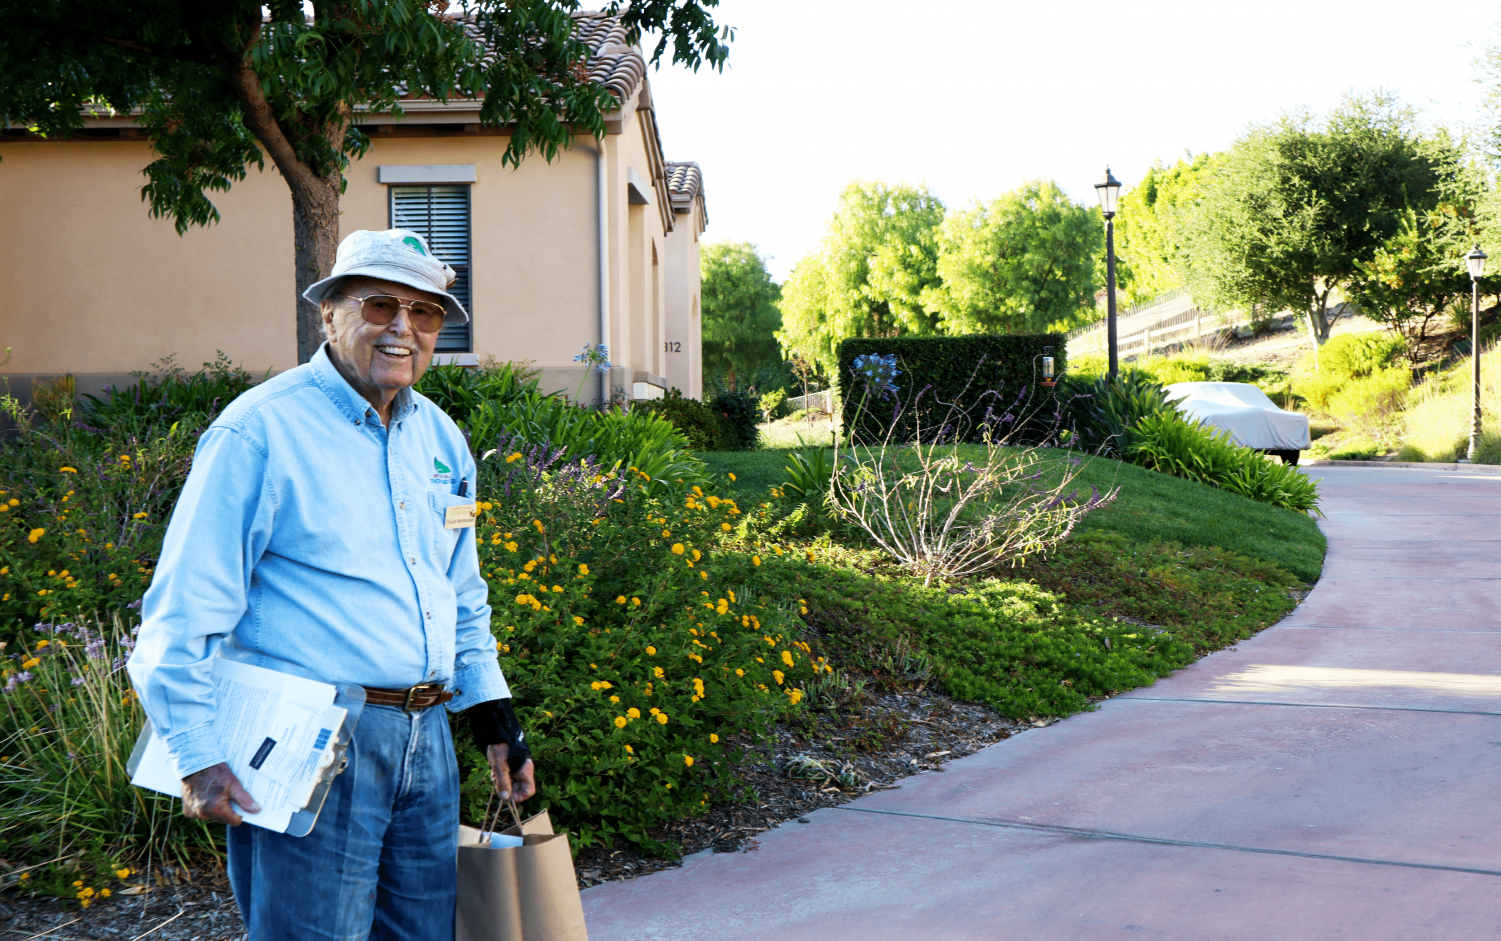 Chuck Mortensen, 95, gives a tour of University Village, a retirement community which is located across the street from California Lutheran University. Mortensen said he celebrated his 95th birthday on Saturday, Oct. 19.